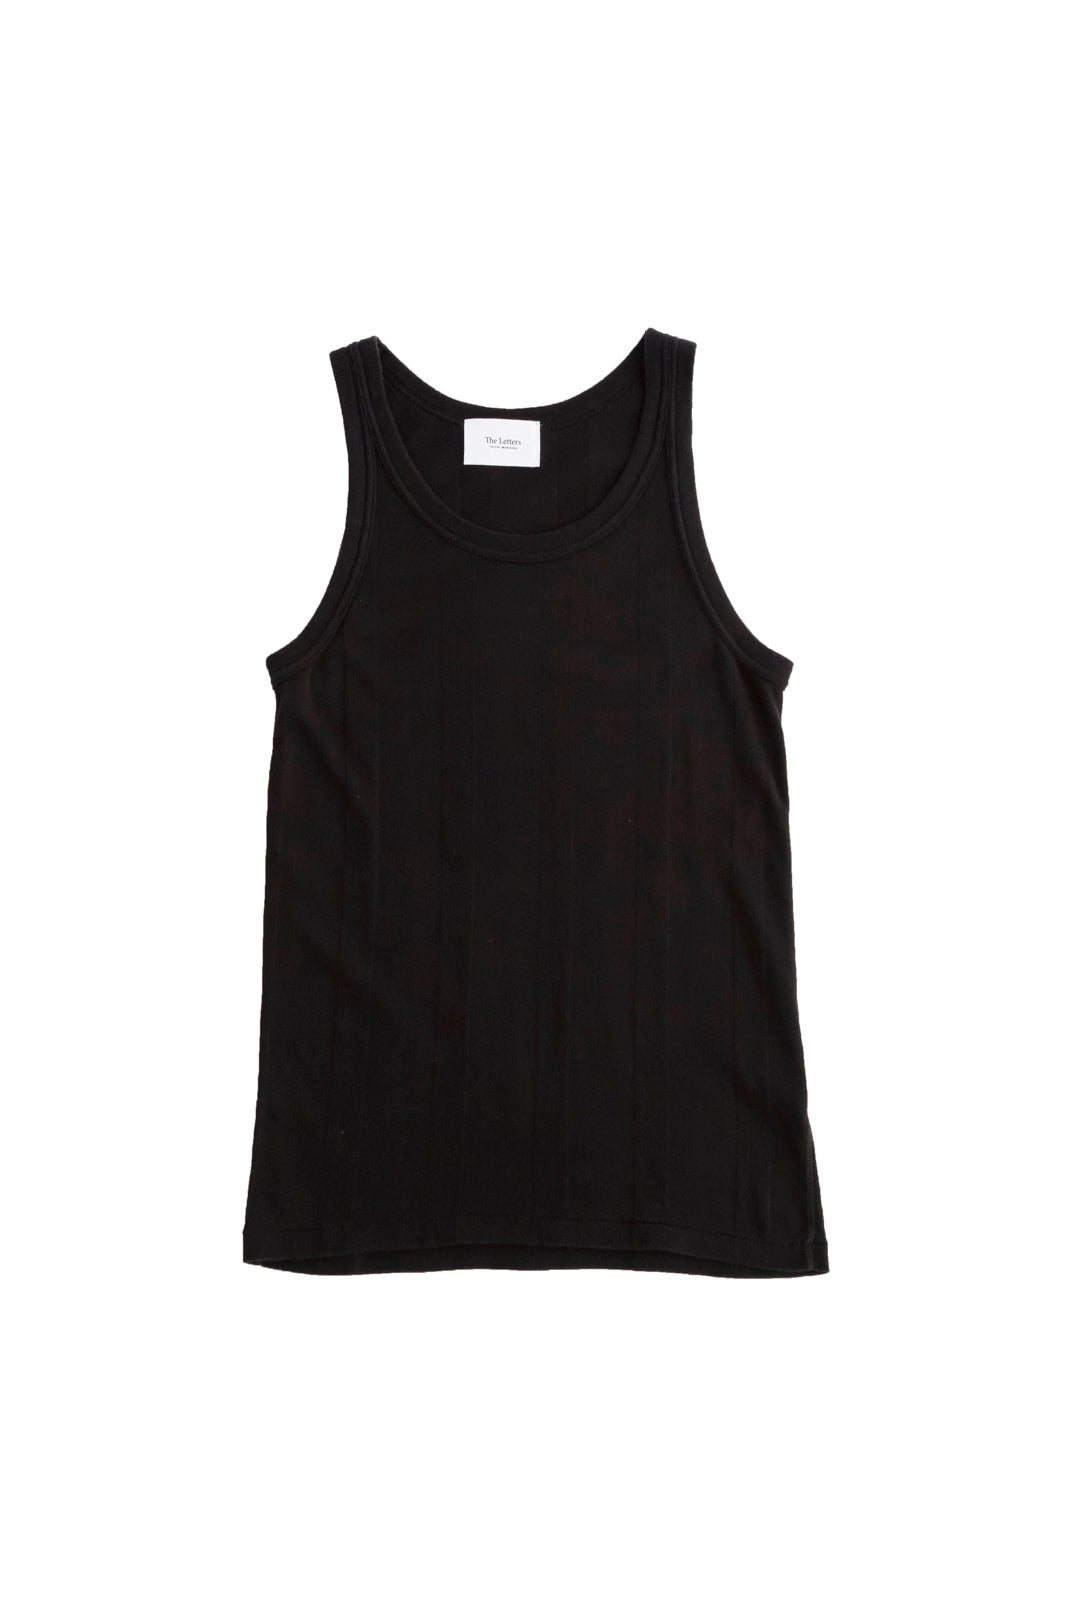 [vendor_title] Black Standard Rib Tank Top - DEPARTAMENTO